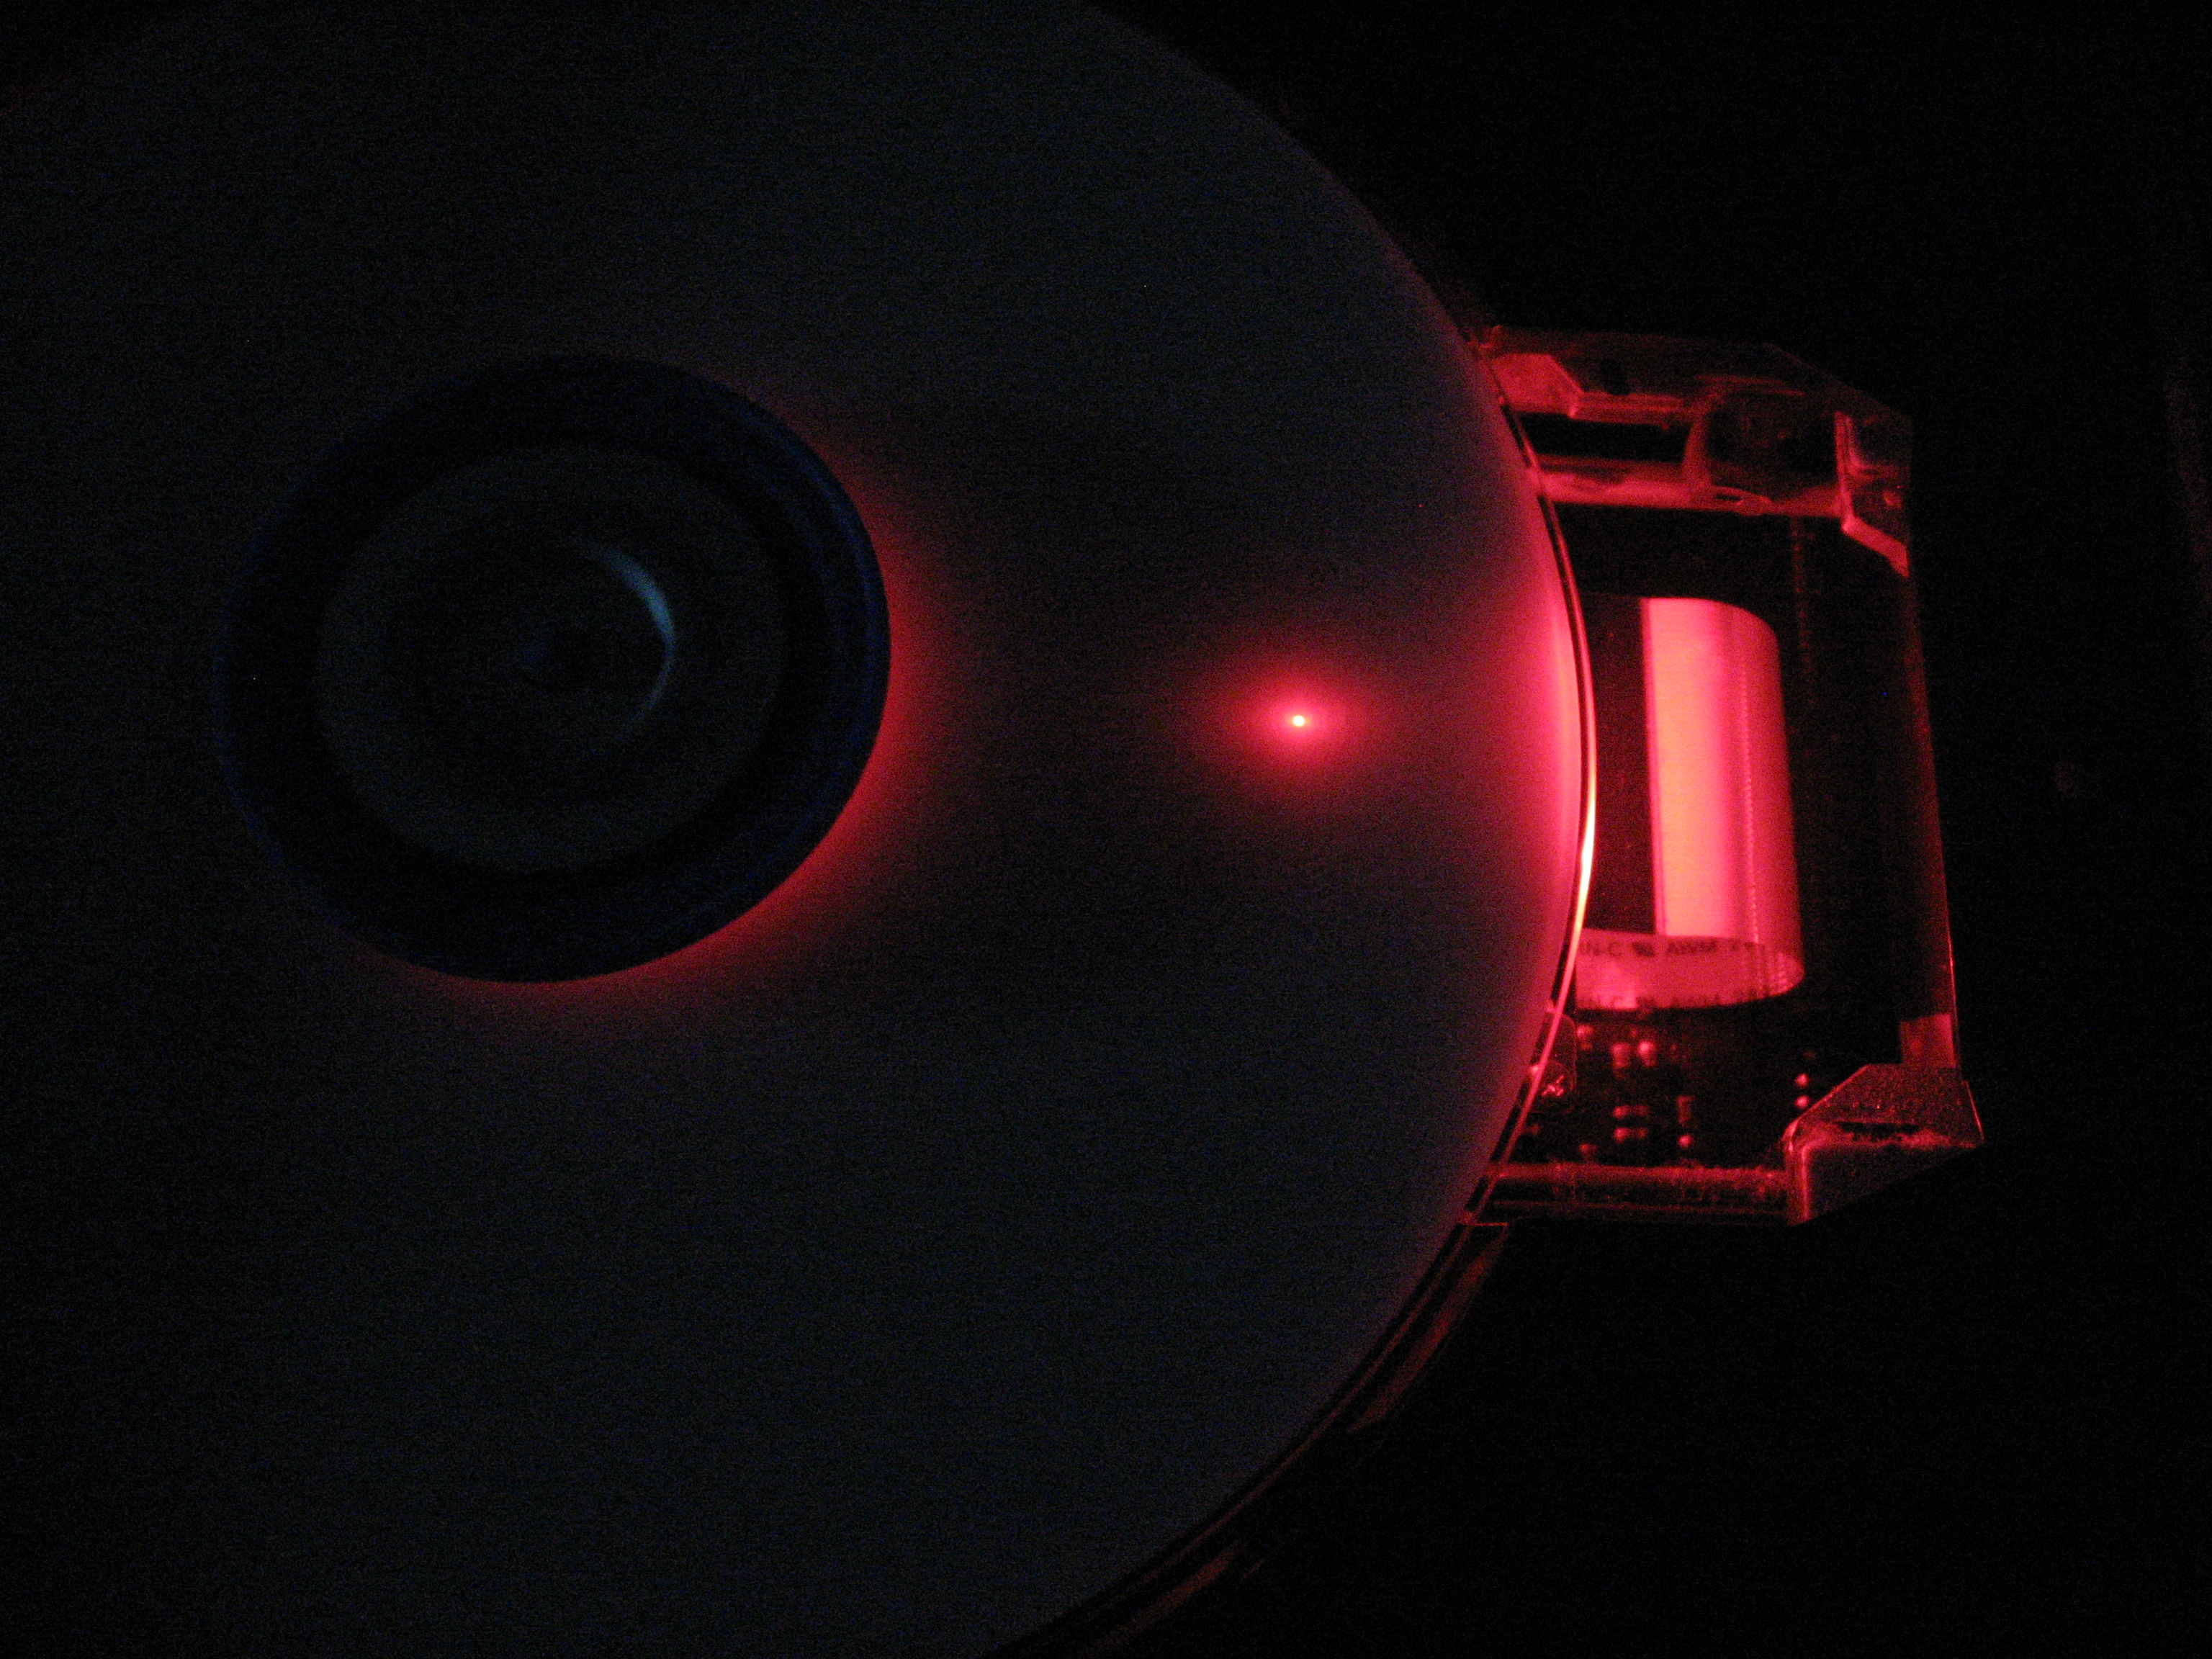 DVD-RW Drive operating with the protective cover removed.